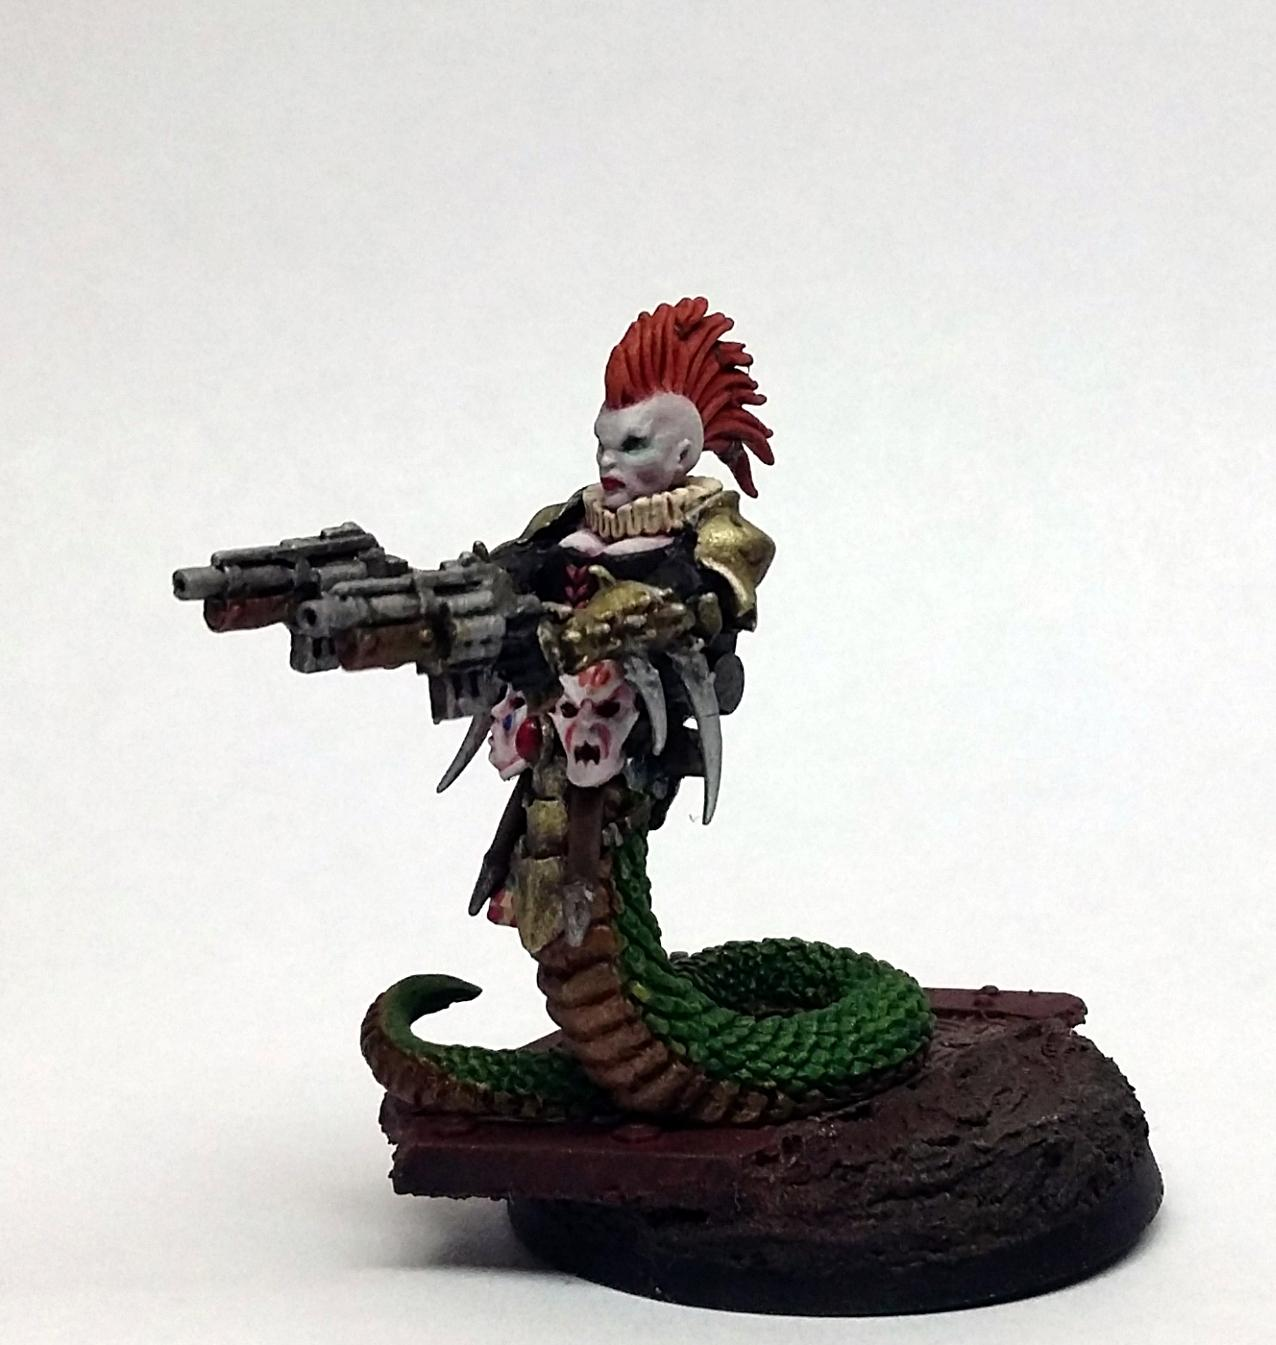 Assassin, Chaos, Chaos Cultist, Inq28, Inquisitor, Slaanesh